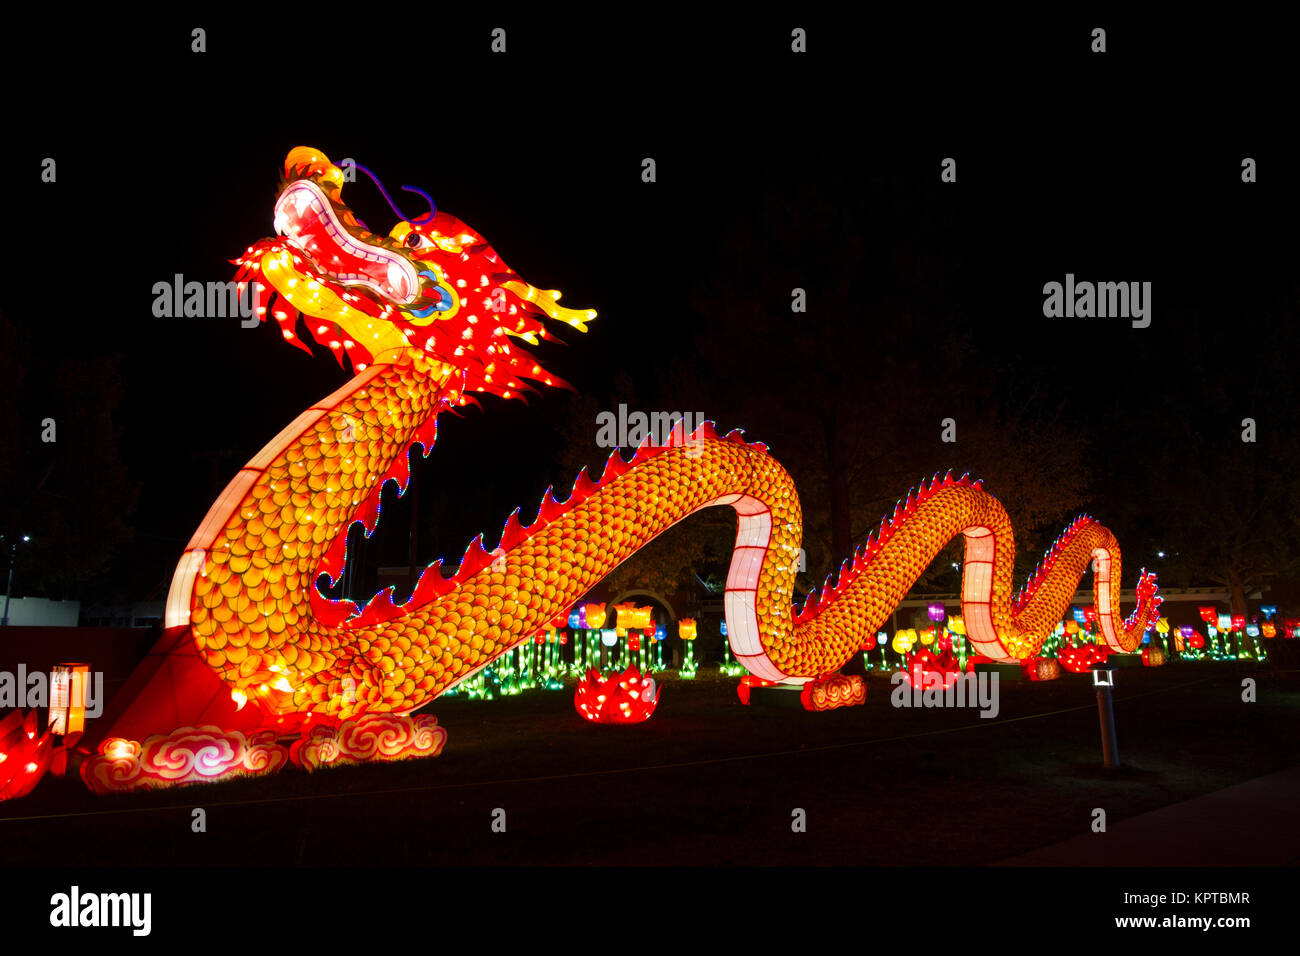 chinese new year night dragon stock photos chinese new year night dragon stock images alamy. Black Bedroom Furniture Sets. Home Design Ideas